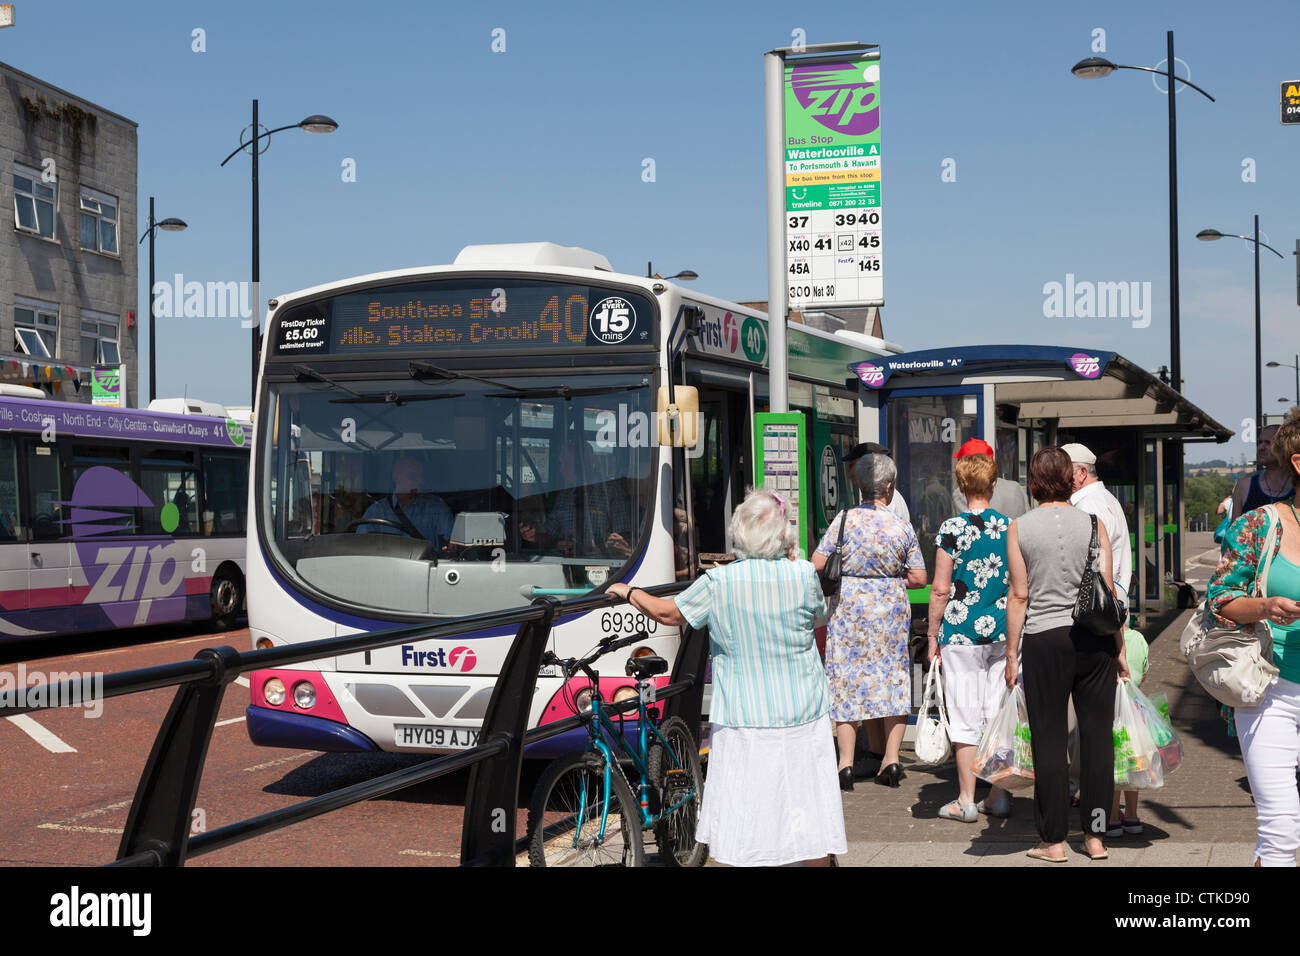 Passengers queing and boarding single decker bus at bus stop - Stock Image